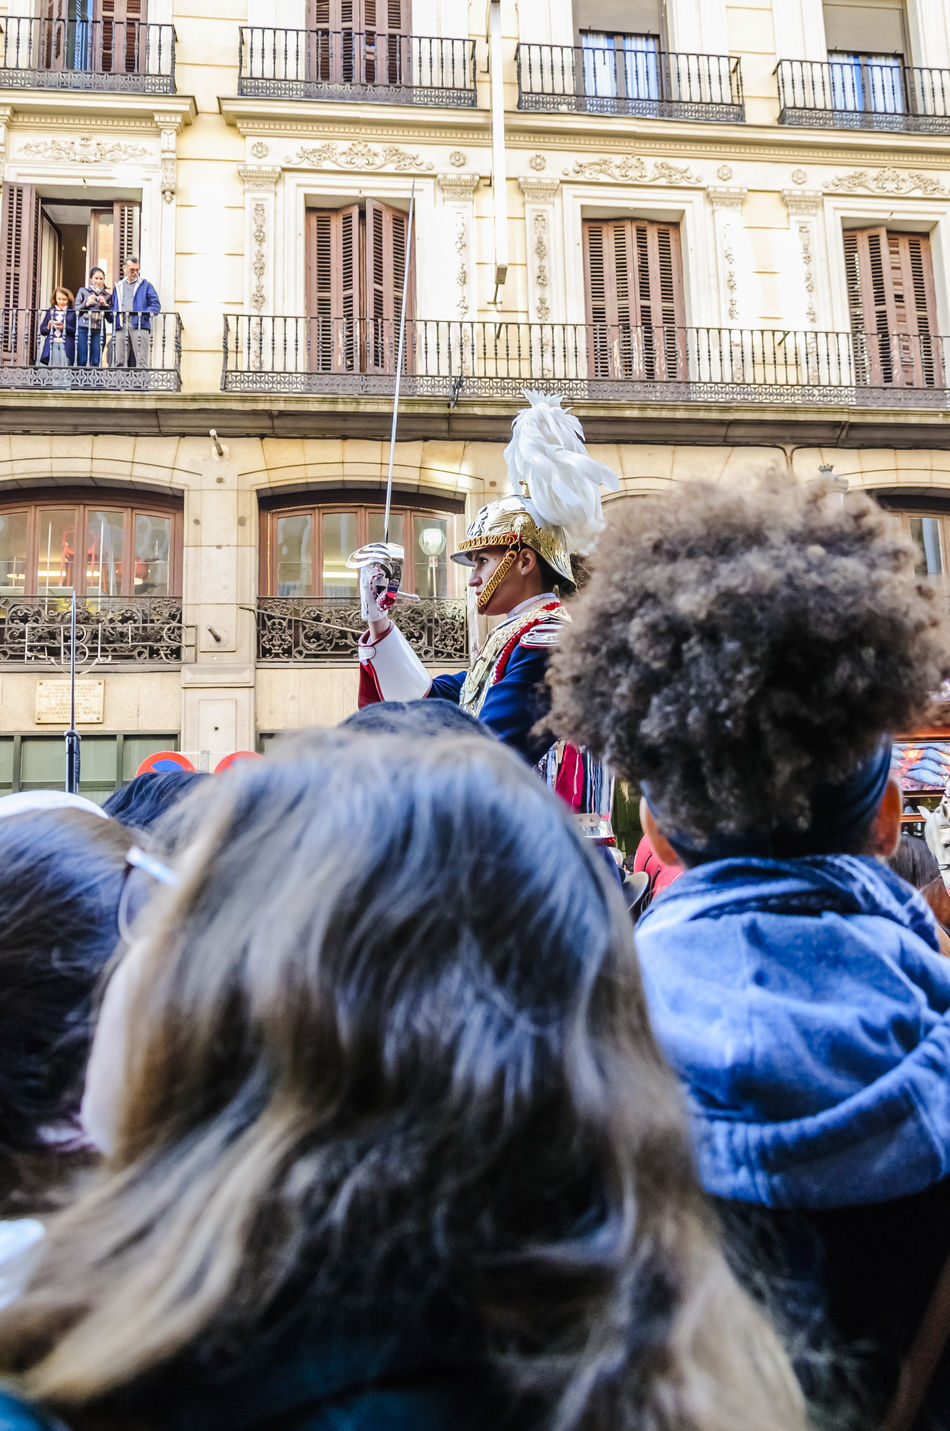 Framed head shot of female cavalry soldier in Madrid surrounded by on lookers. Cavalry City City Cultures Editorial  Guard Helmet Horse Horse Riding Horses Men Military Mounted News People Street Travel Uniform Uniforms Watching Women